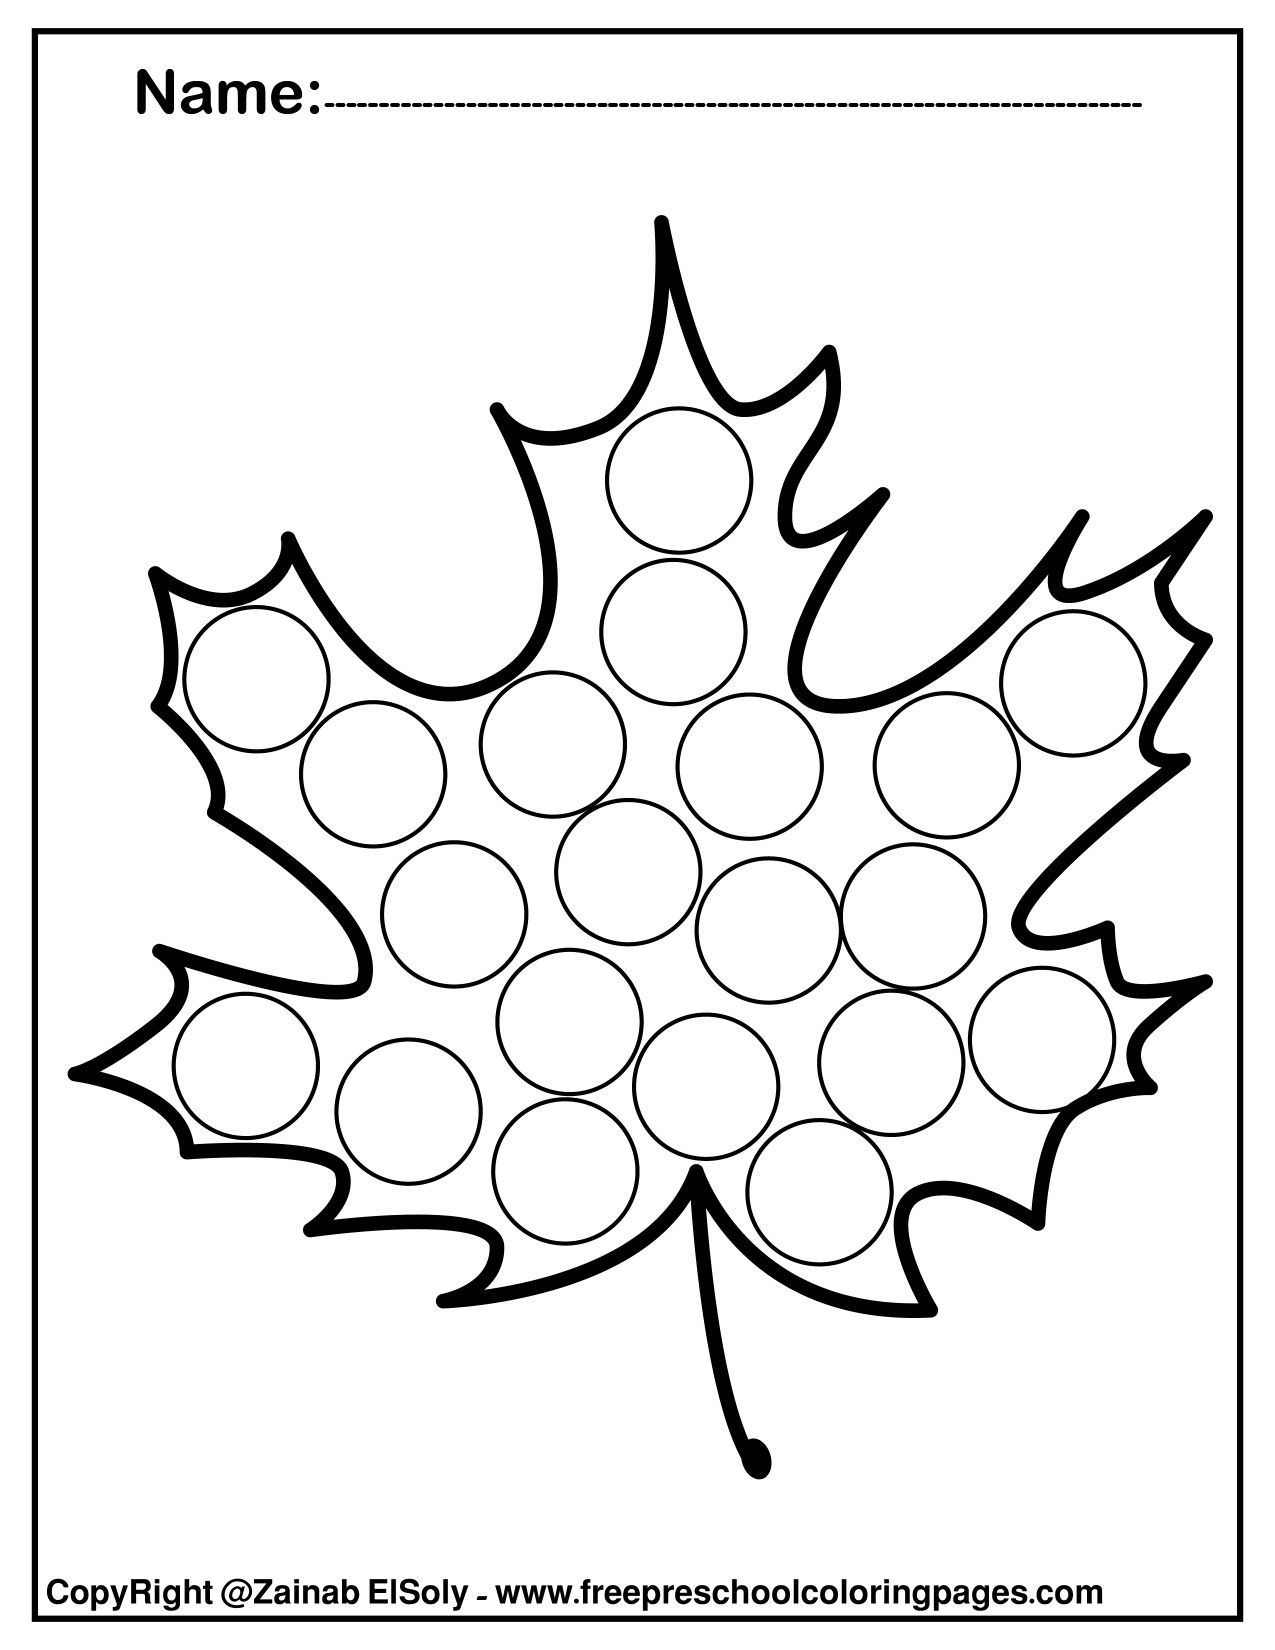 Free Autumn Leaves Fall Do A Dot Marker Coloring Pages Free Printable Preschool Coloring Pa Fall Coloring Pages Fall Coloring Sheets Fall Leaves Coloring Pages